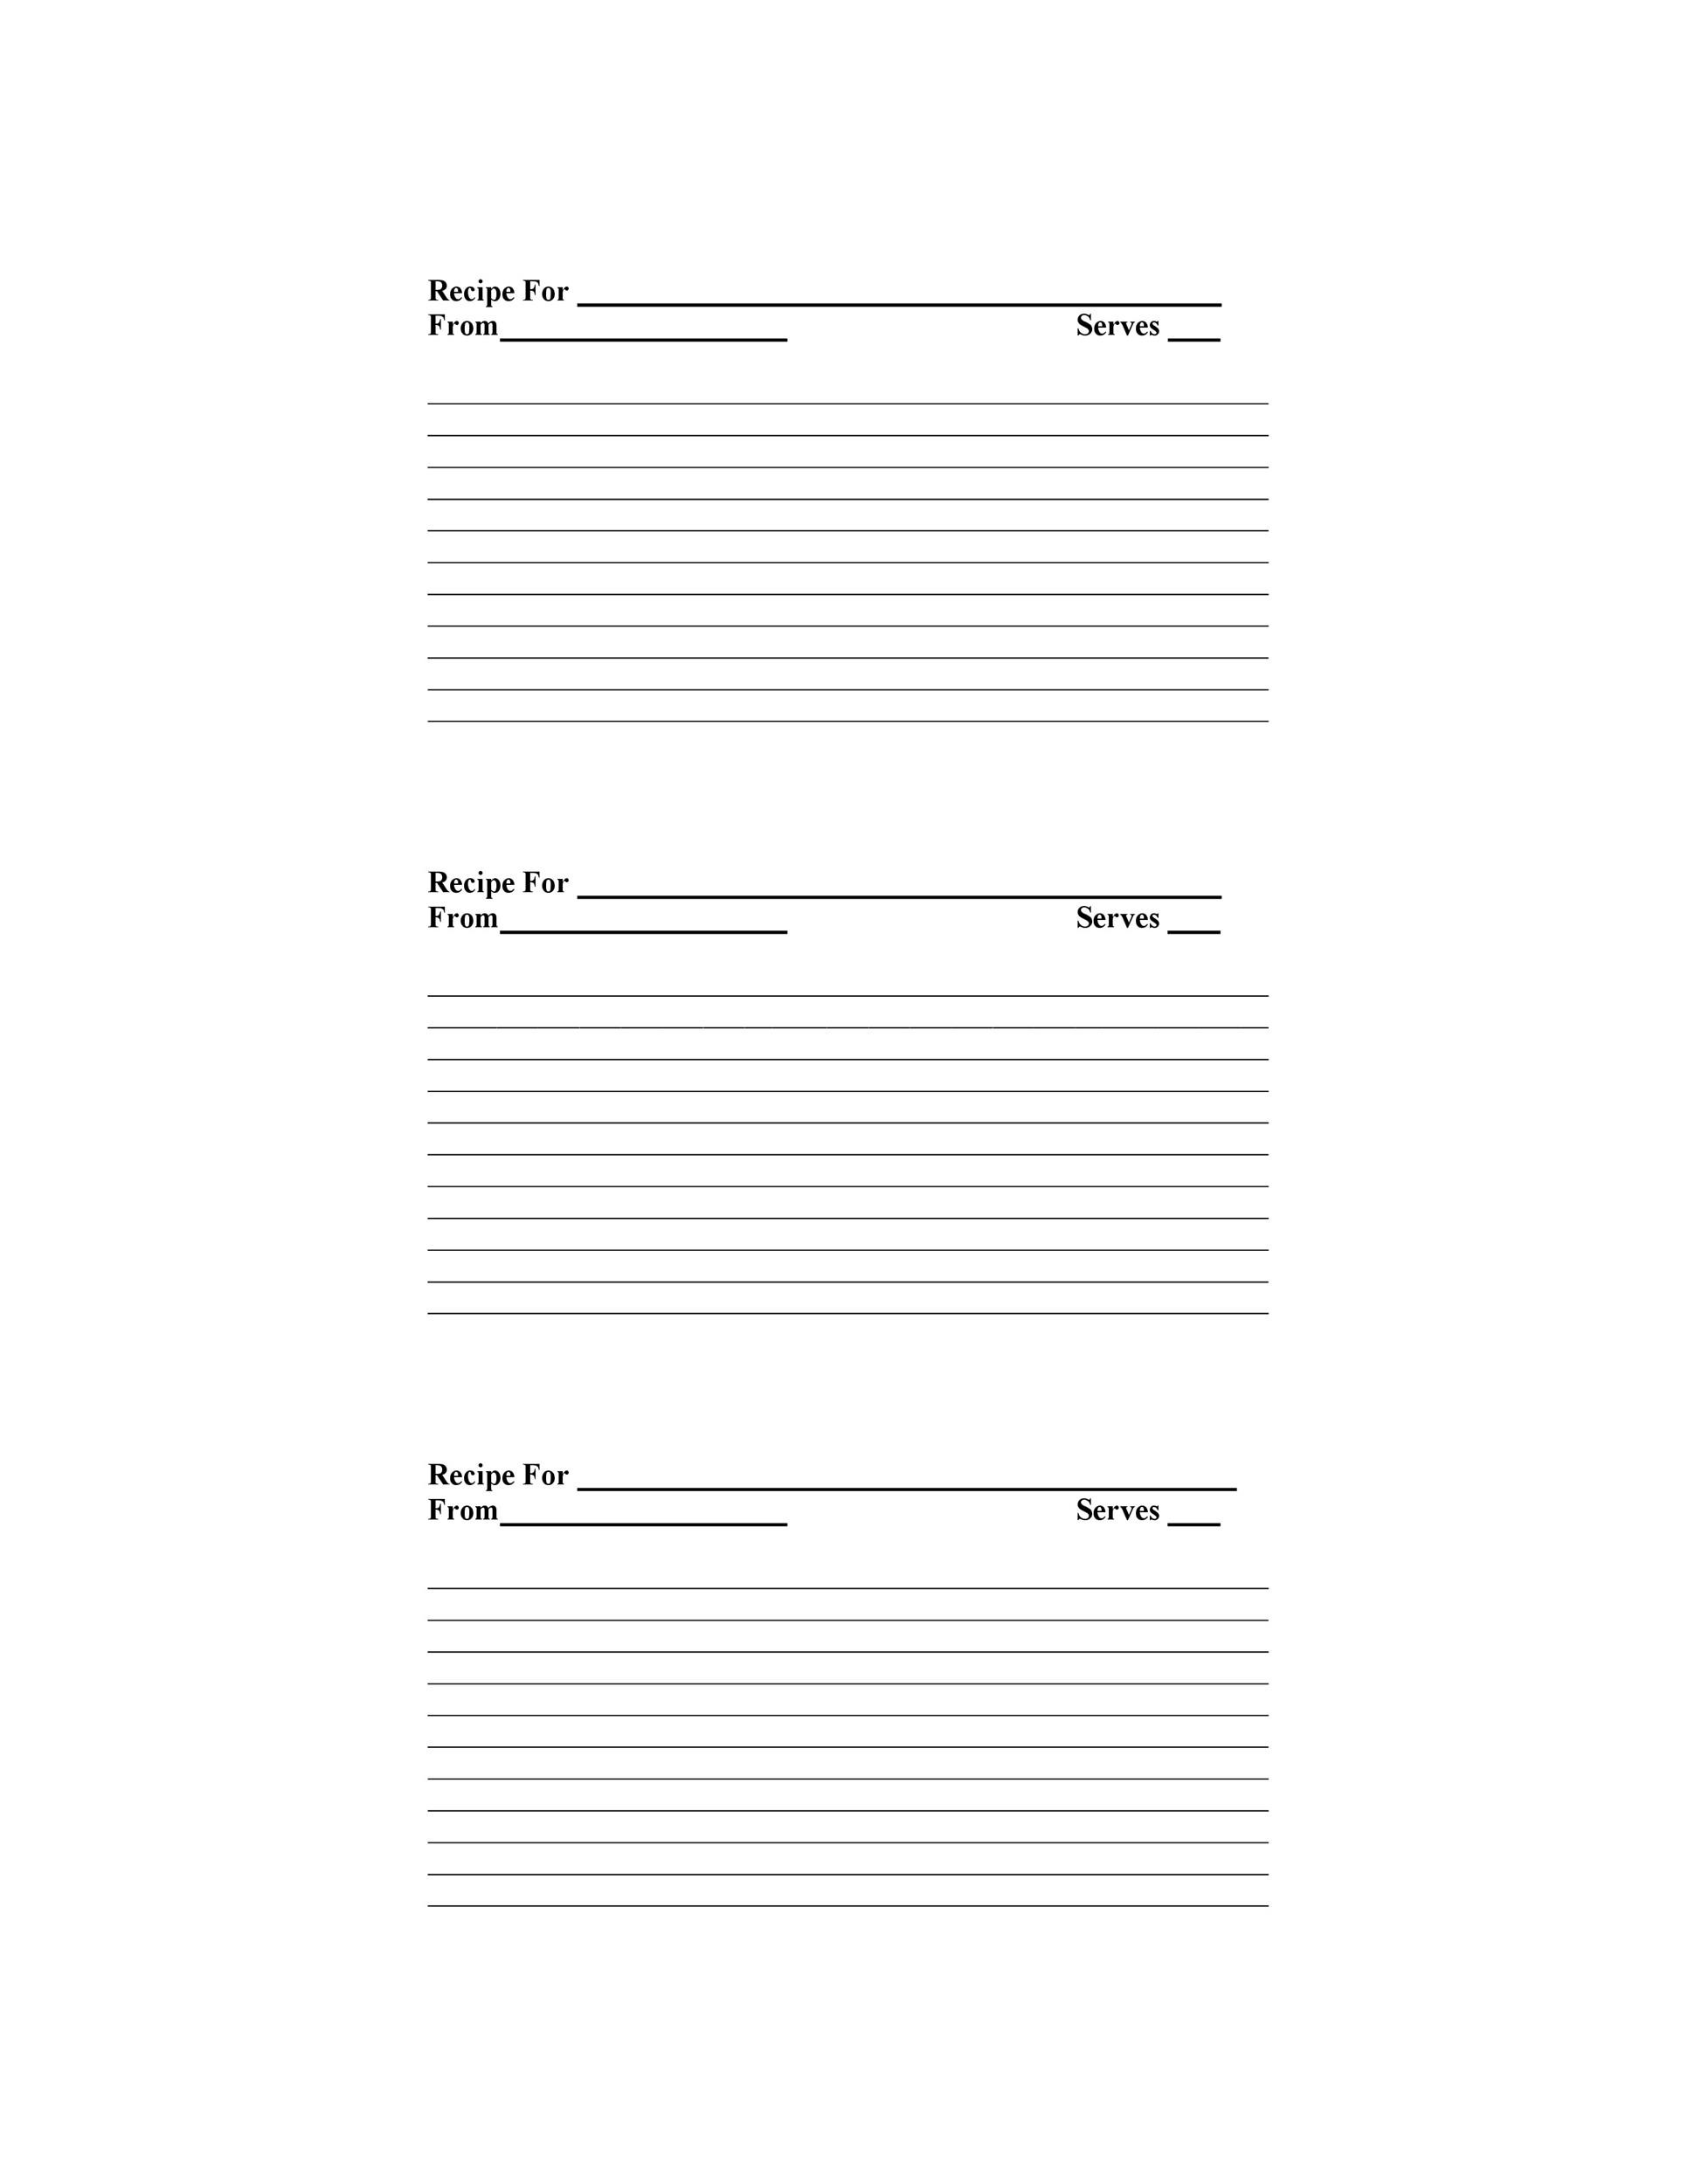 Free Recipe Template Word from templatelab.com